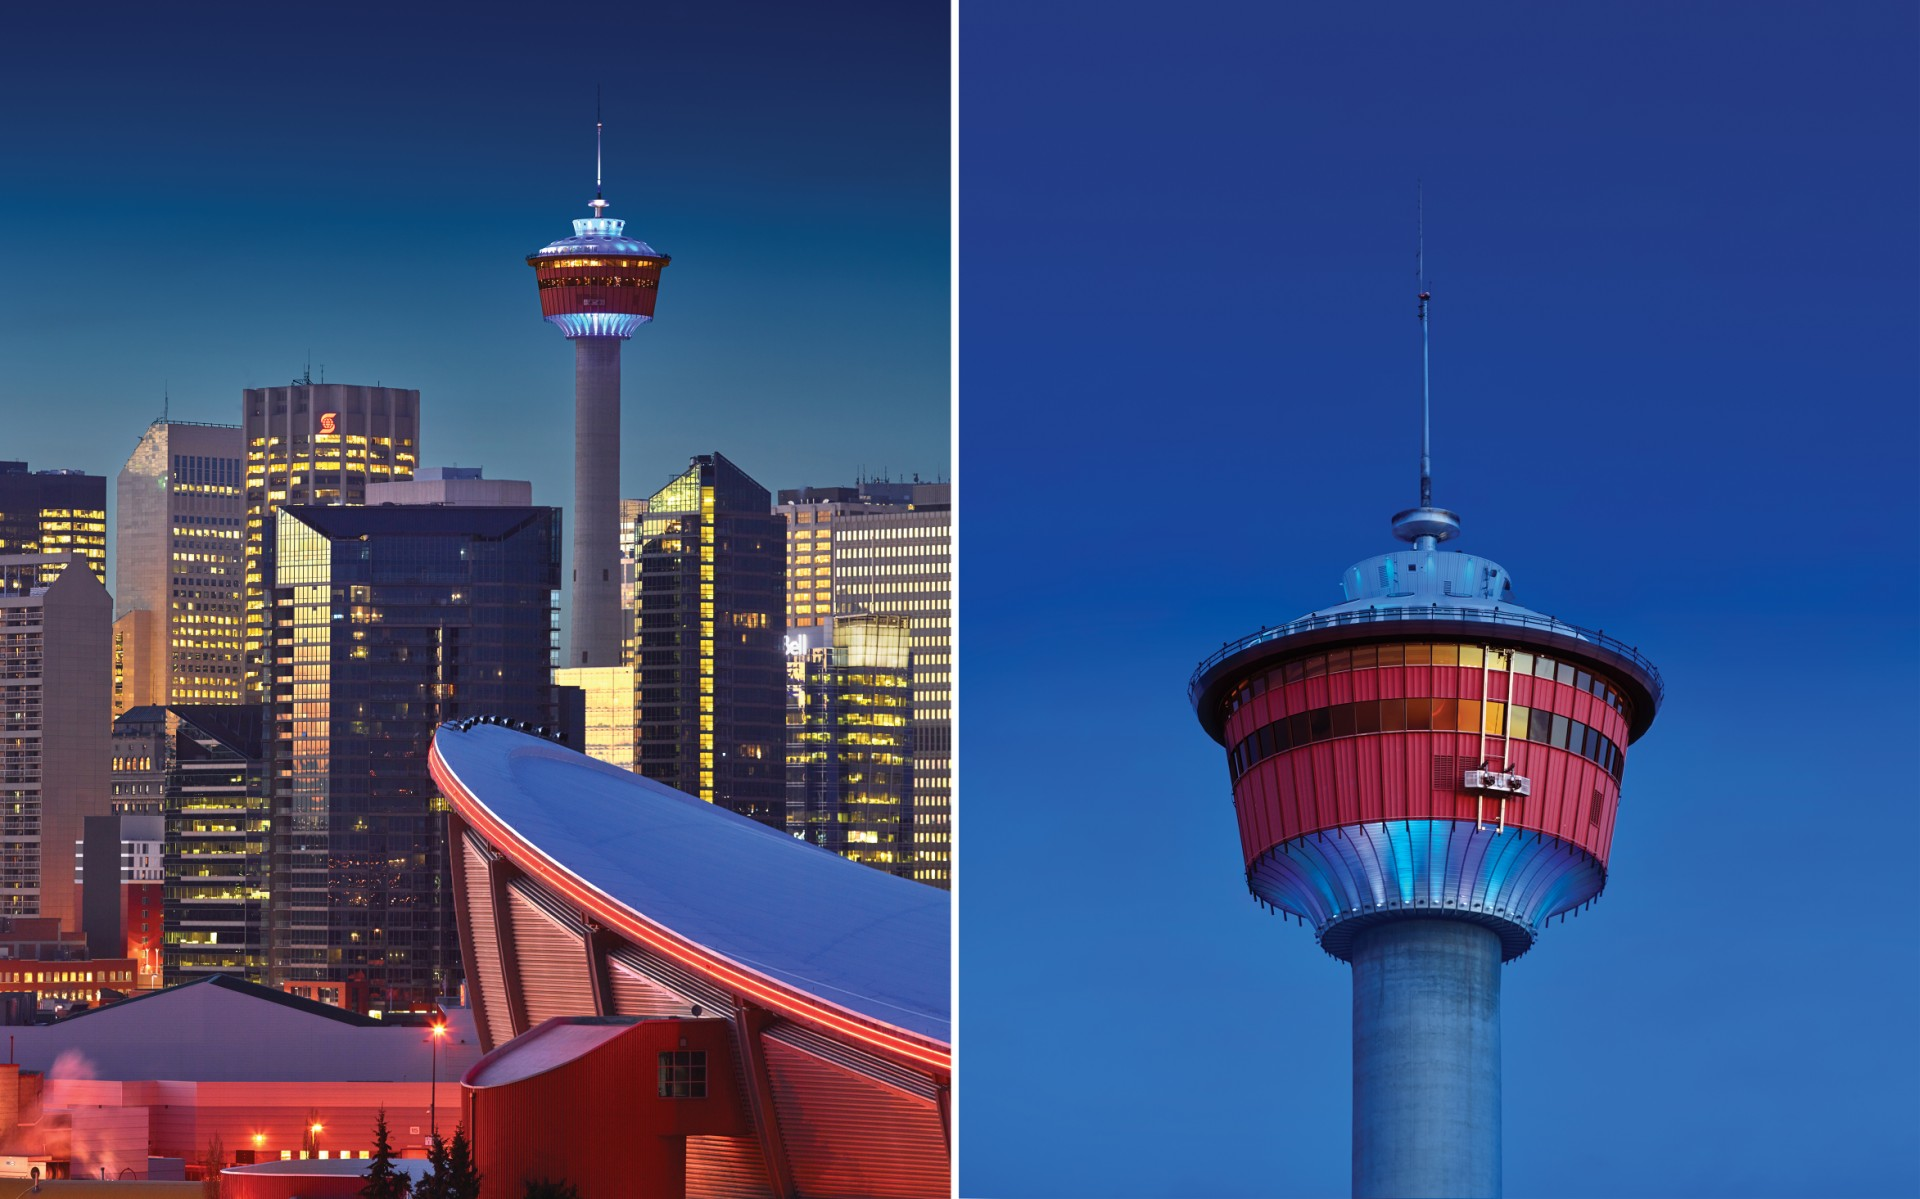 Local lighting designers Optics Lighting used Lumenbeam luminaires to bring the Calgary Tower back into the spotlight.